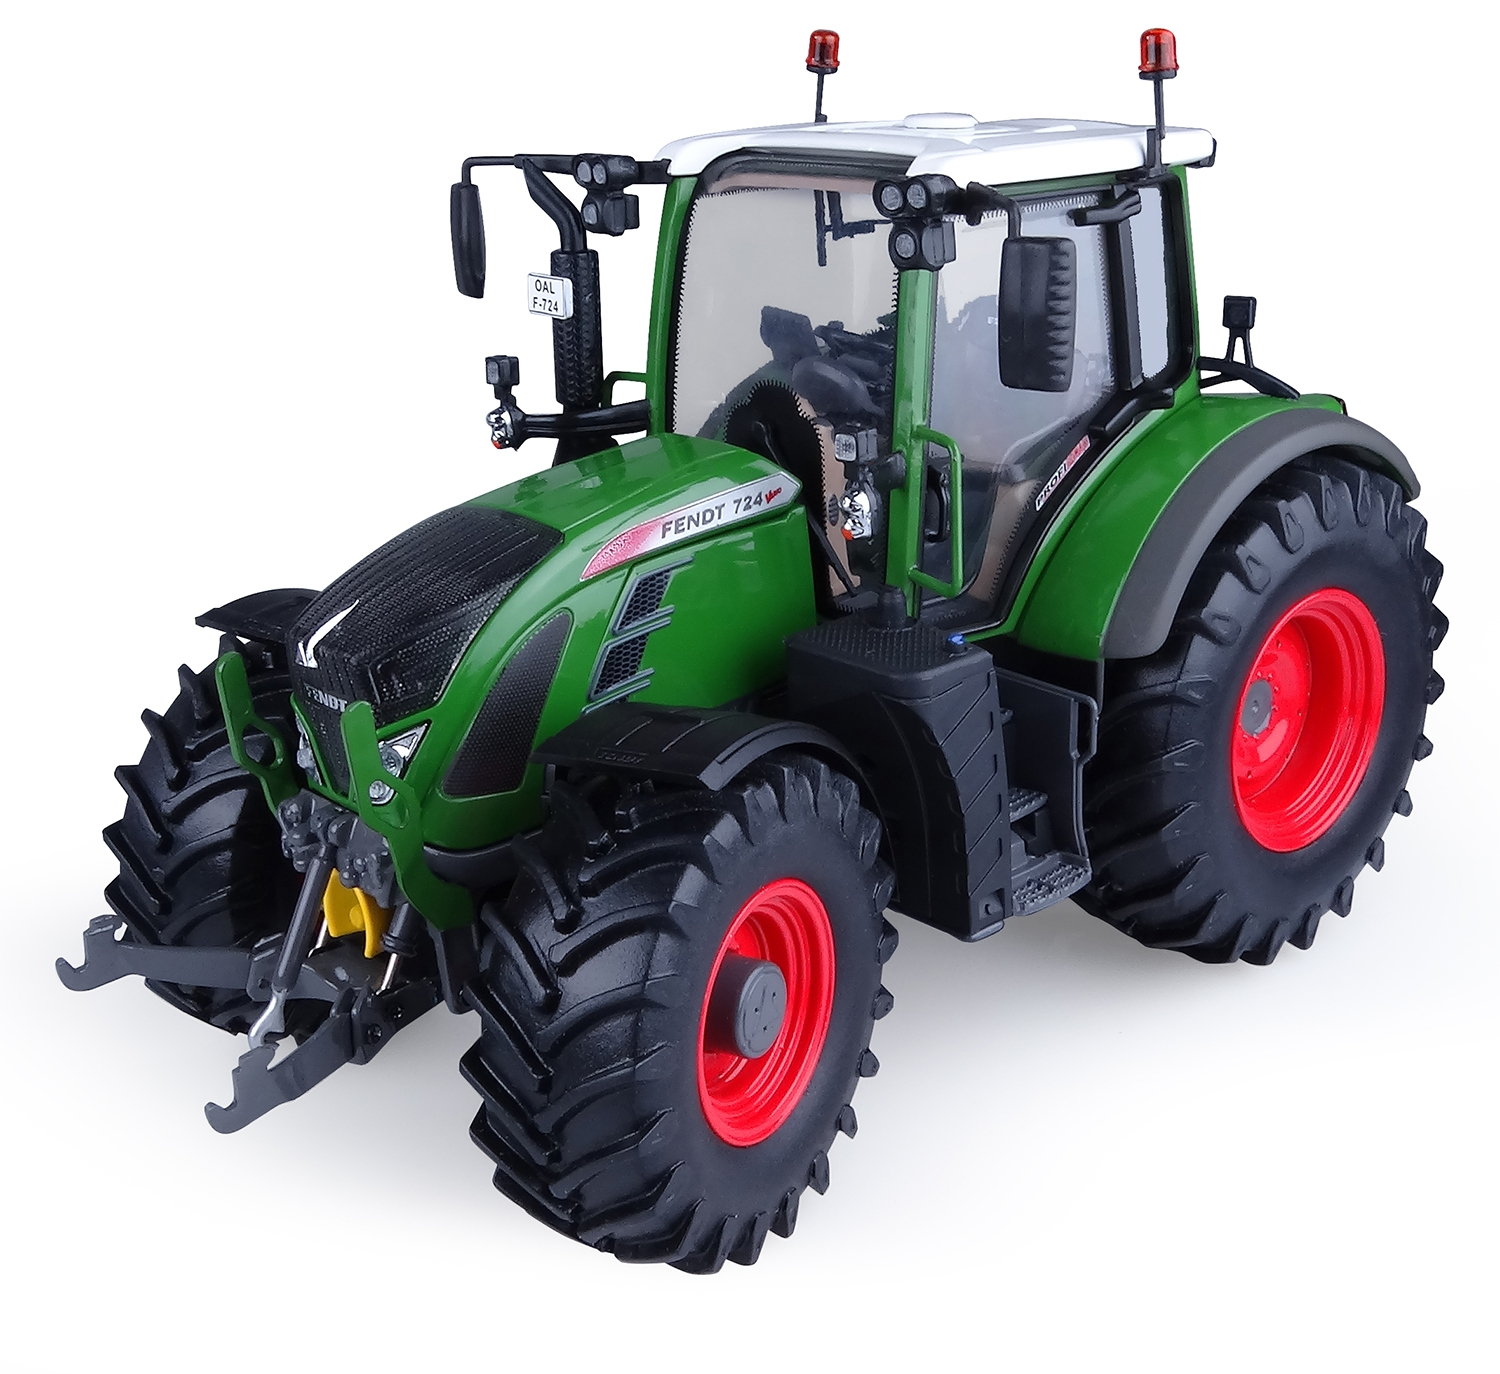 Fendt 724 Vario - nature green color ...